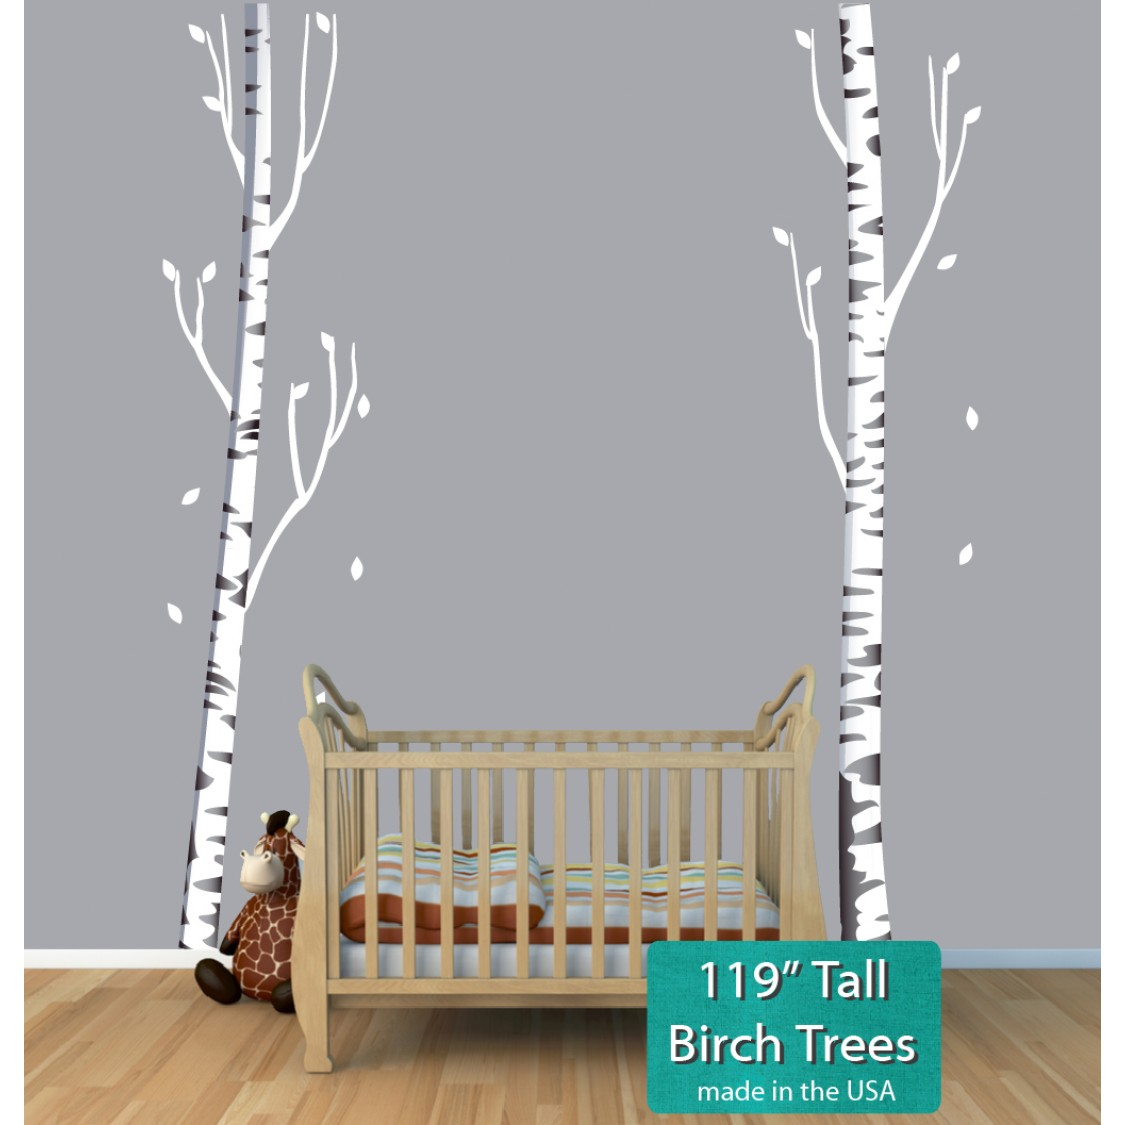 Tree Wall Decal and Birch Tree Decals For Children